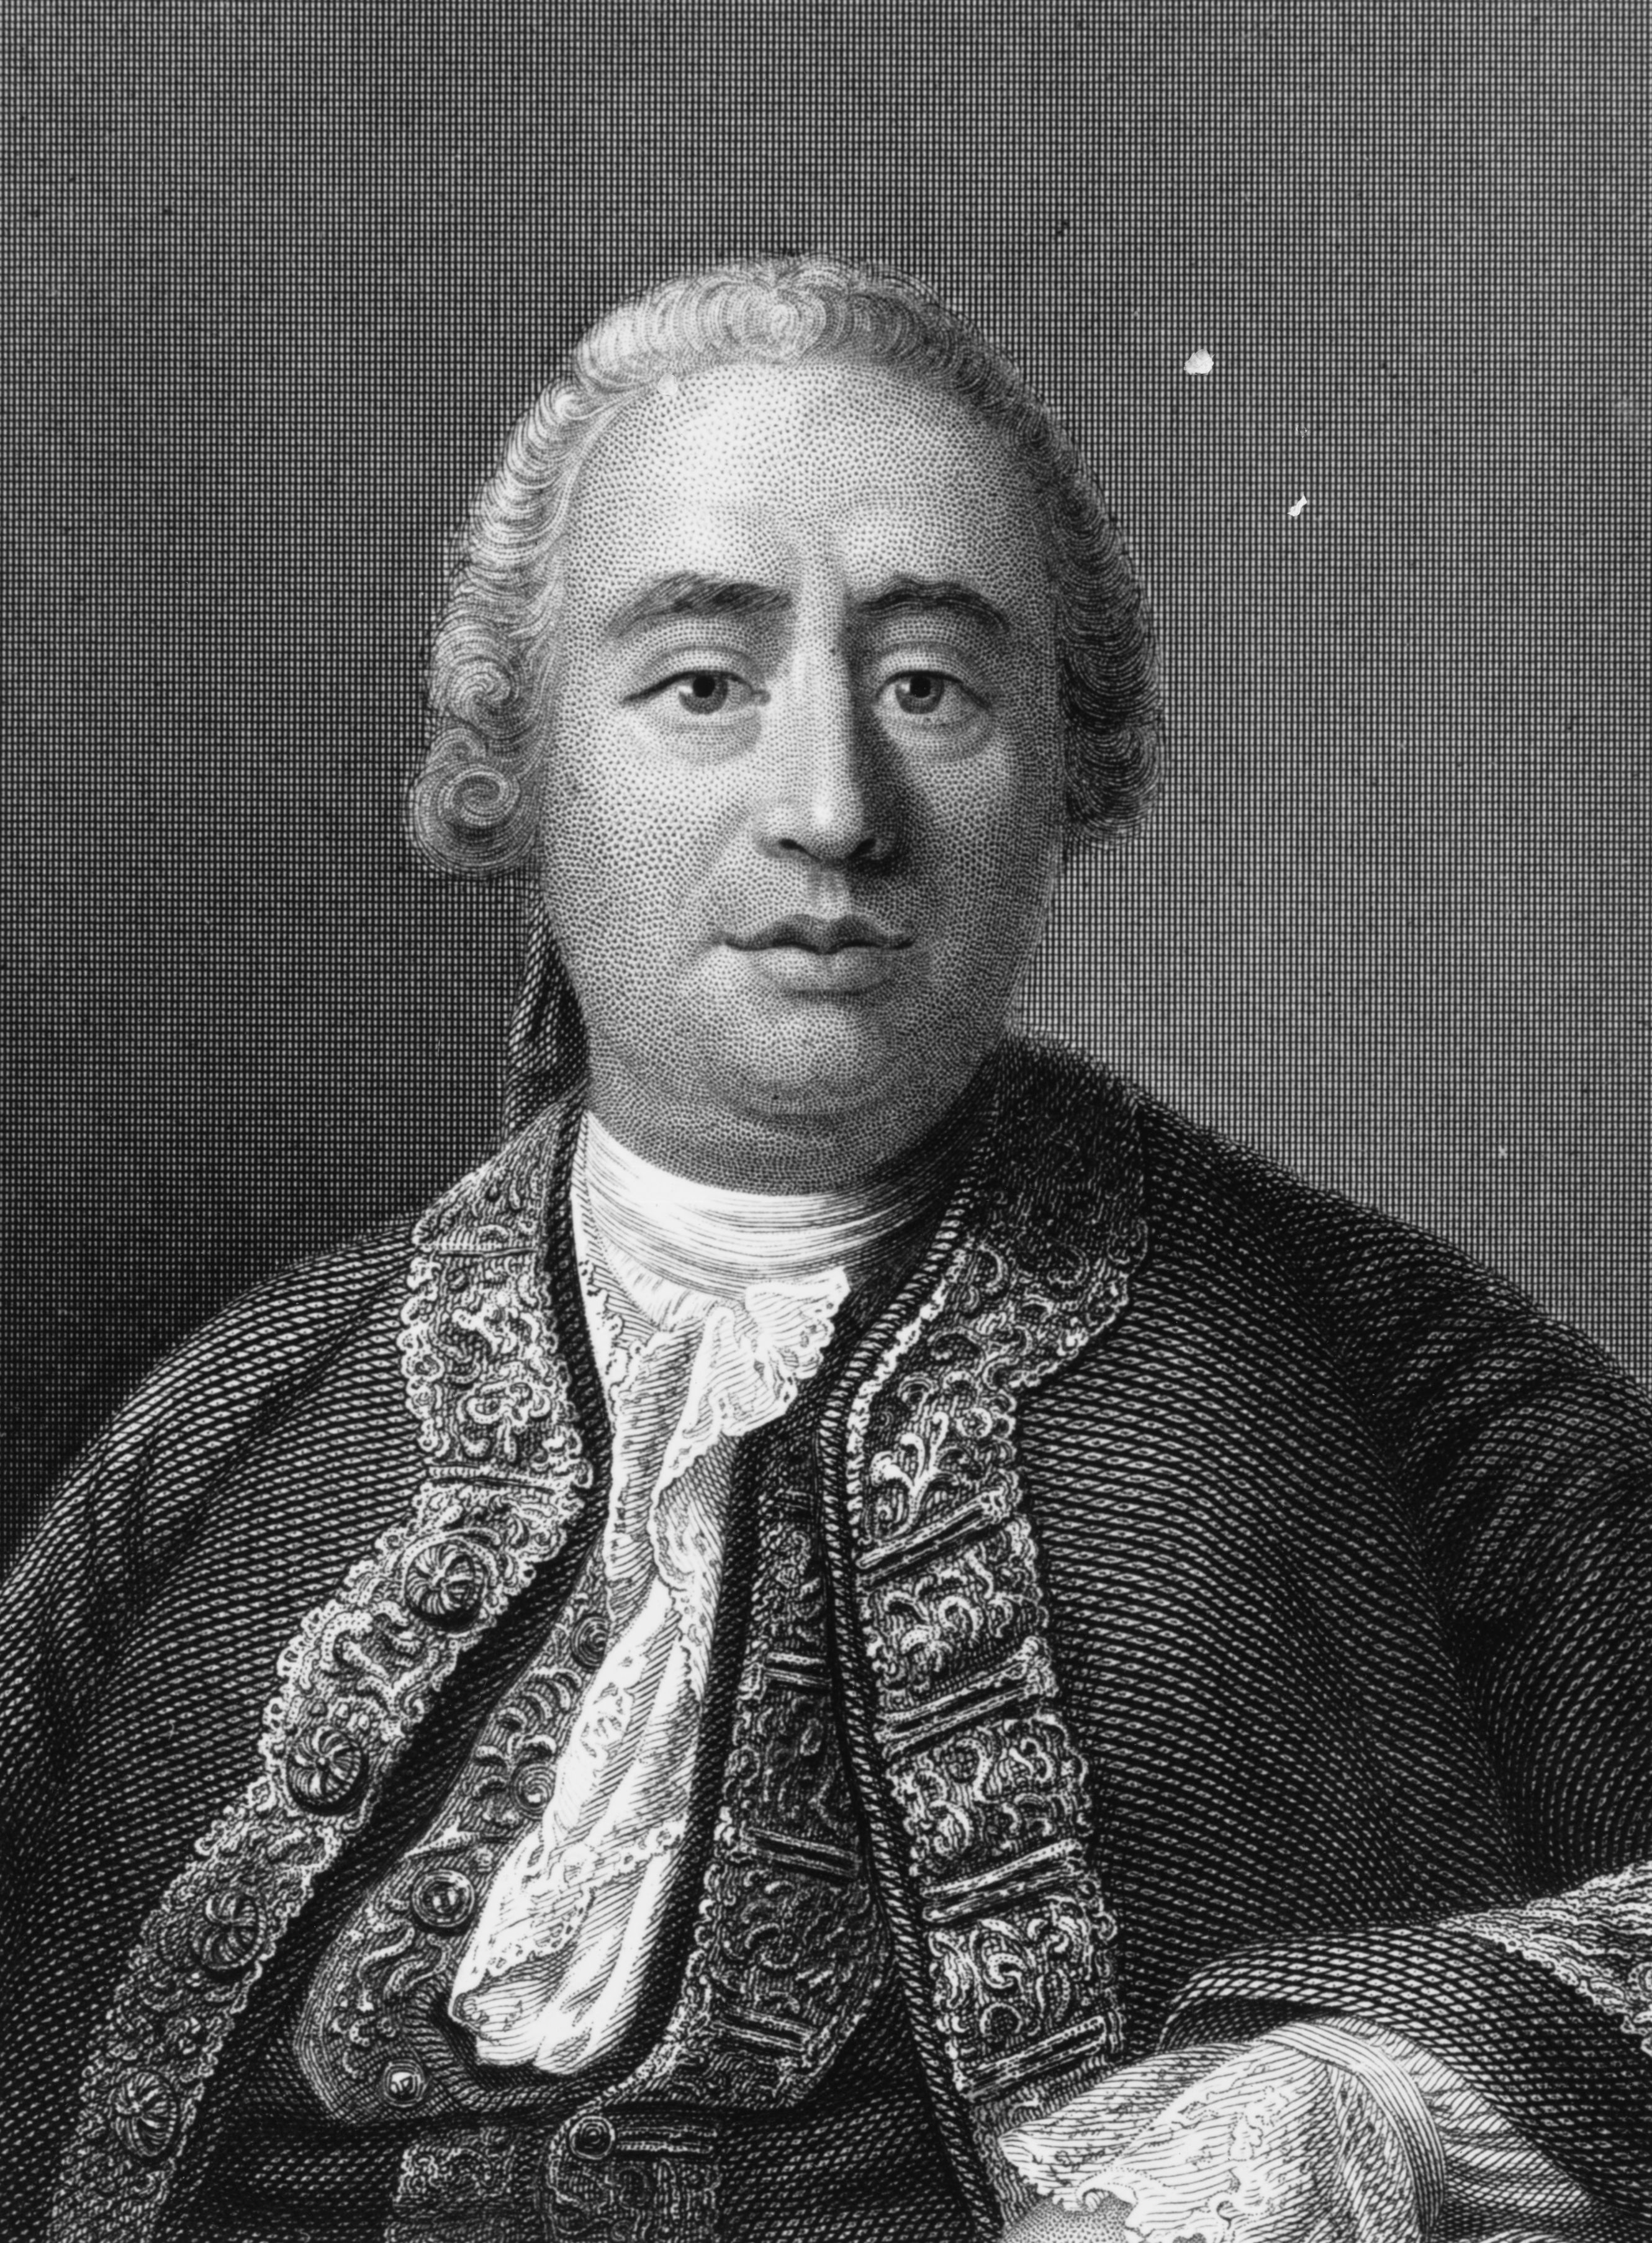 about david hume Generally regarded as one of the most important philosophers to write in english, david hume (b 1711, d 1776) was also well known in his own time as an historian and essayist.